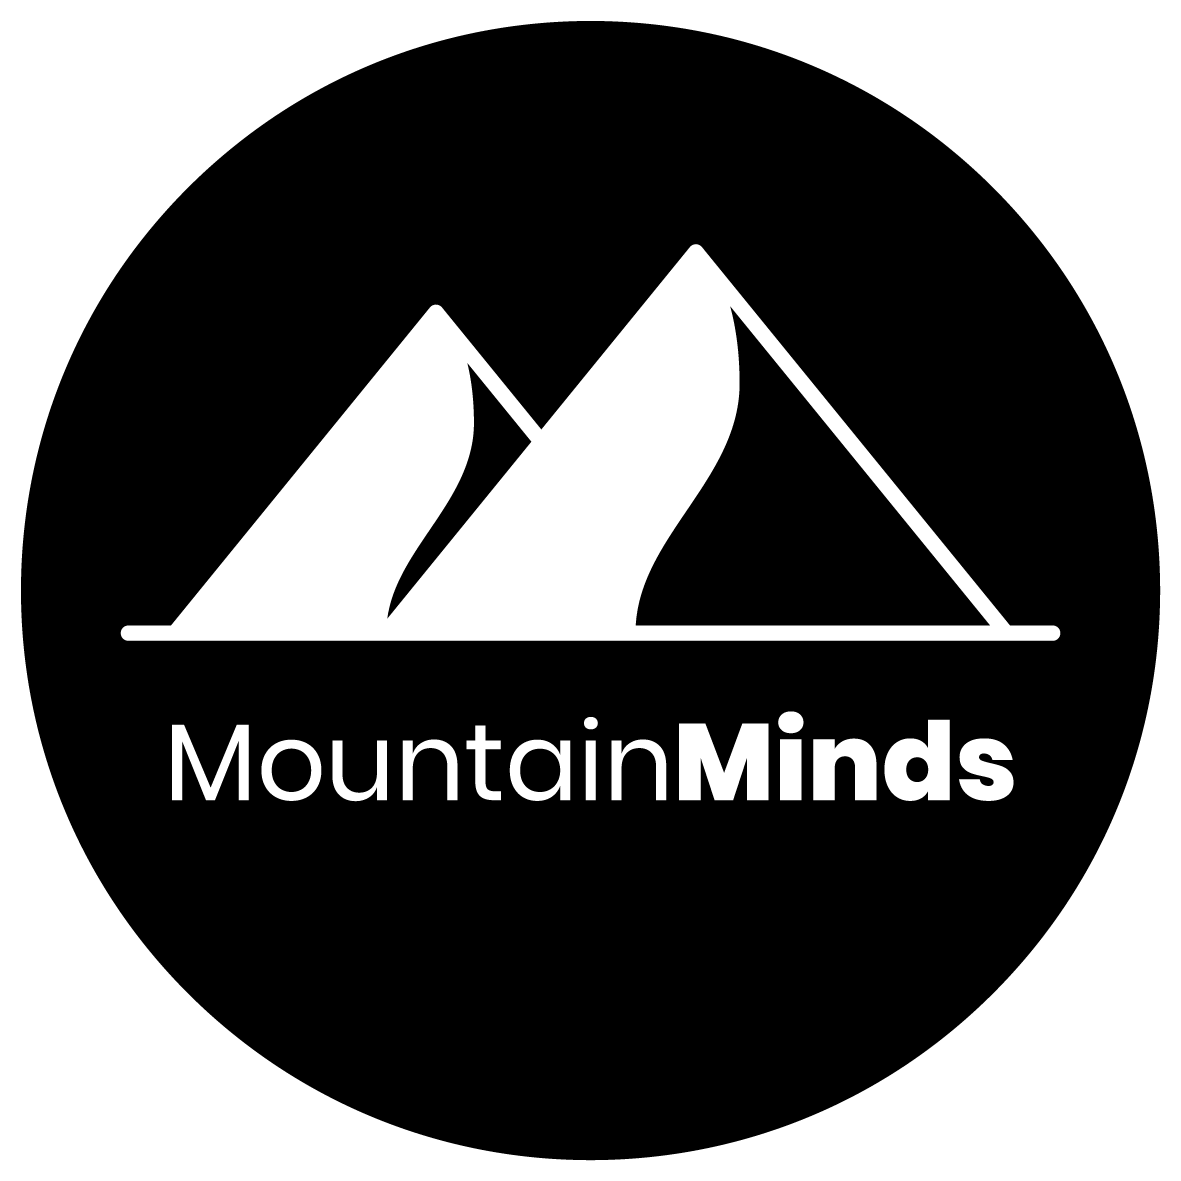 MountainMinds